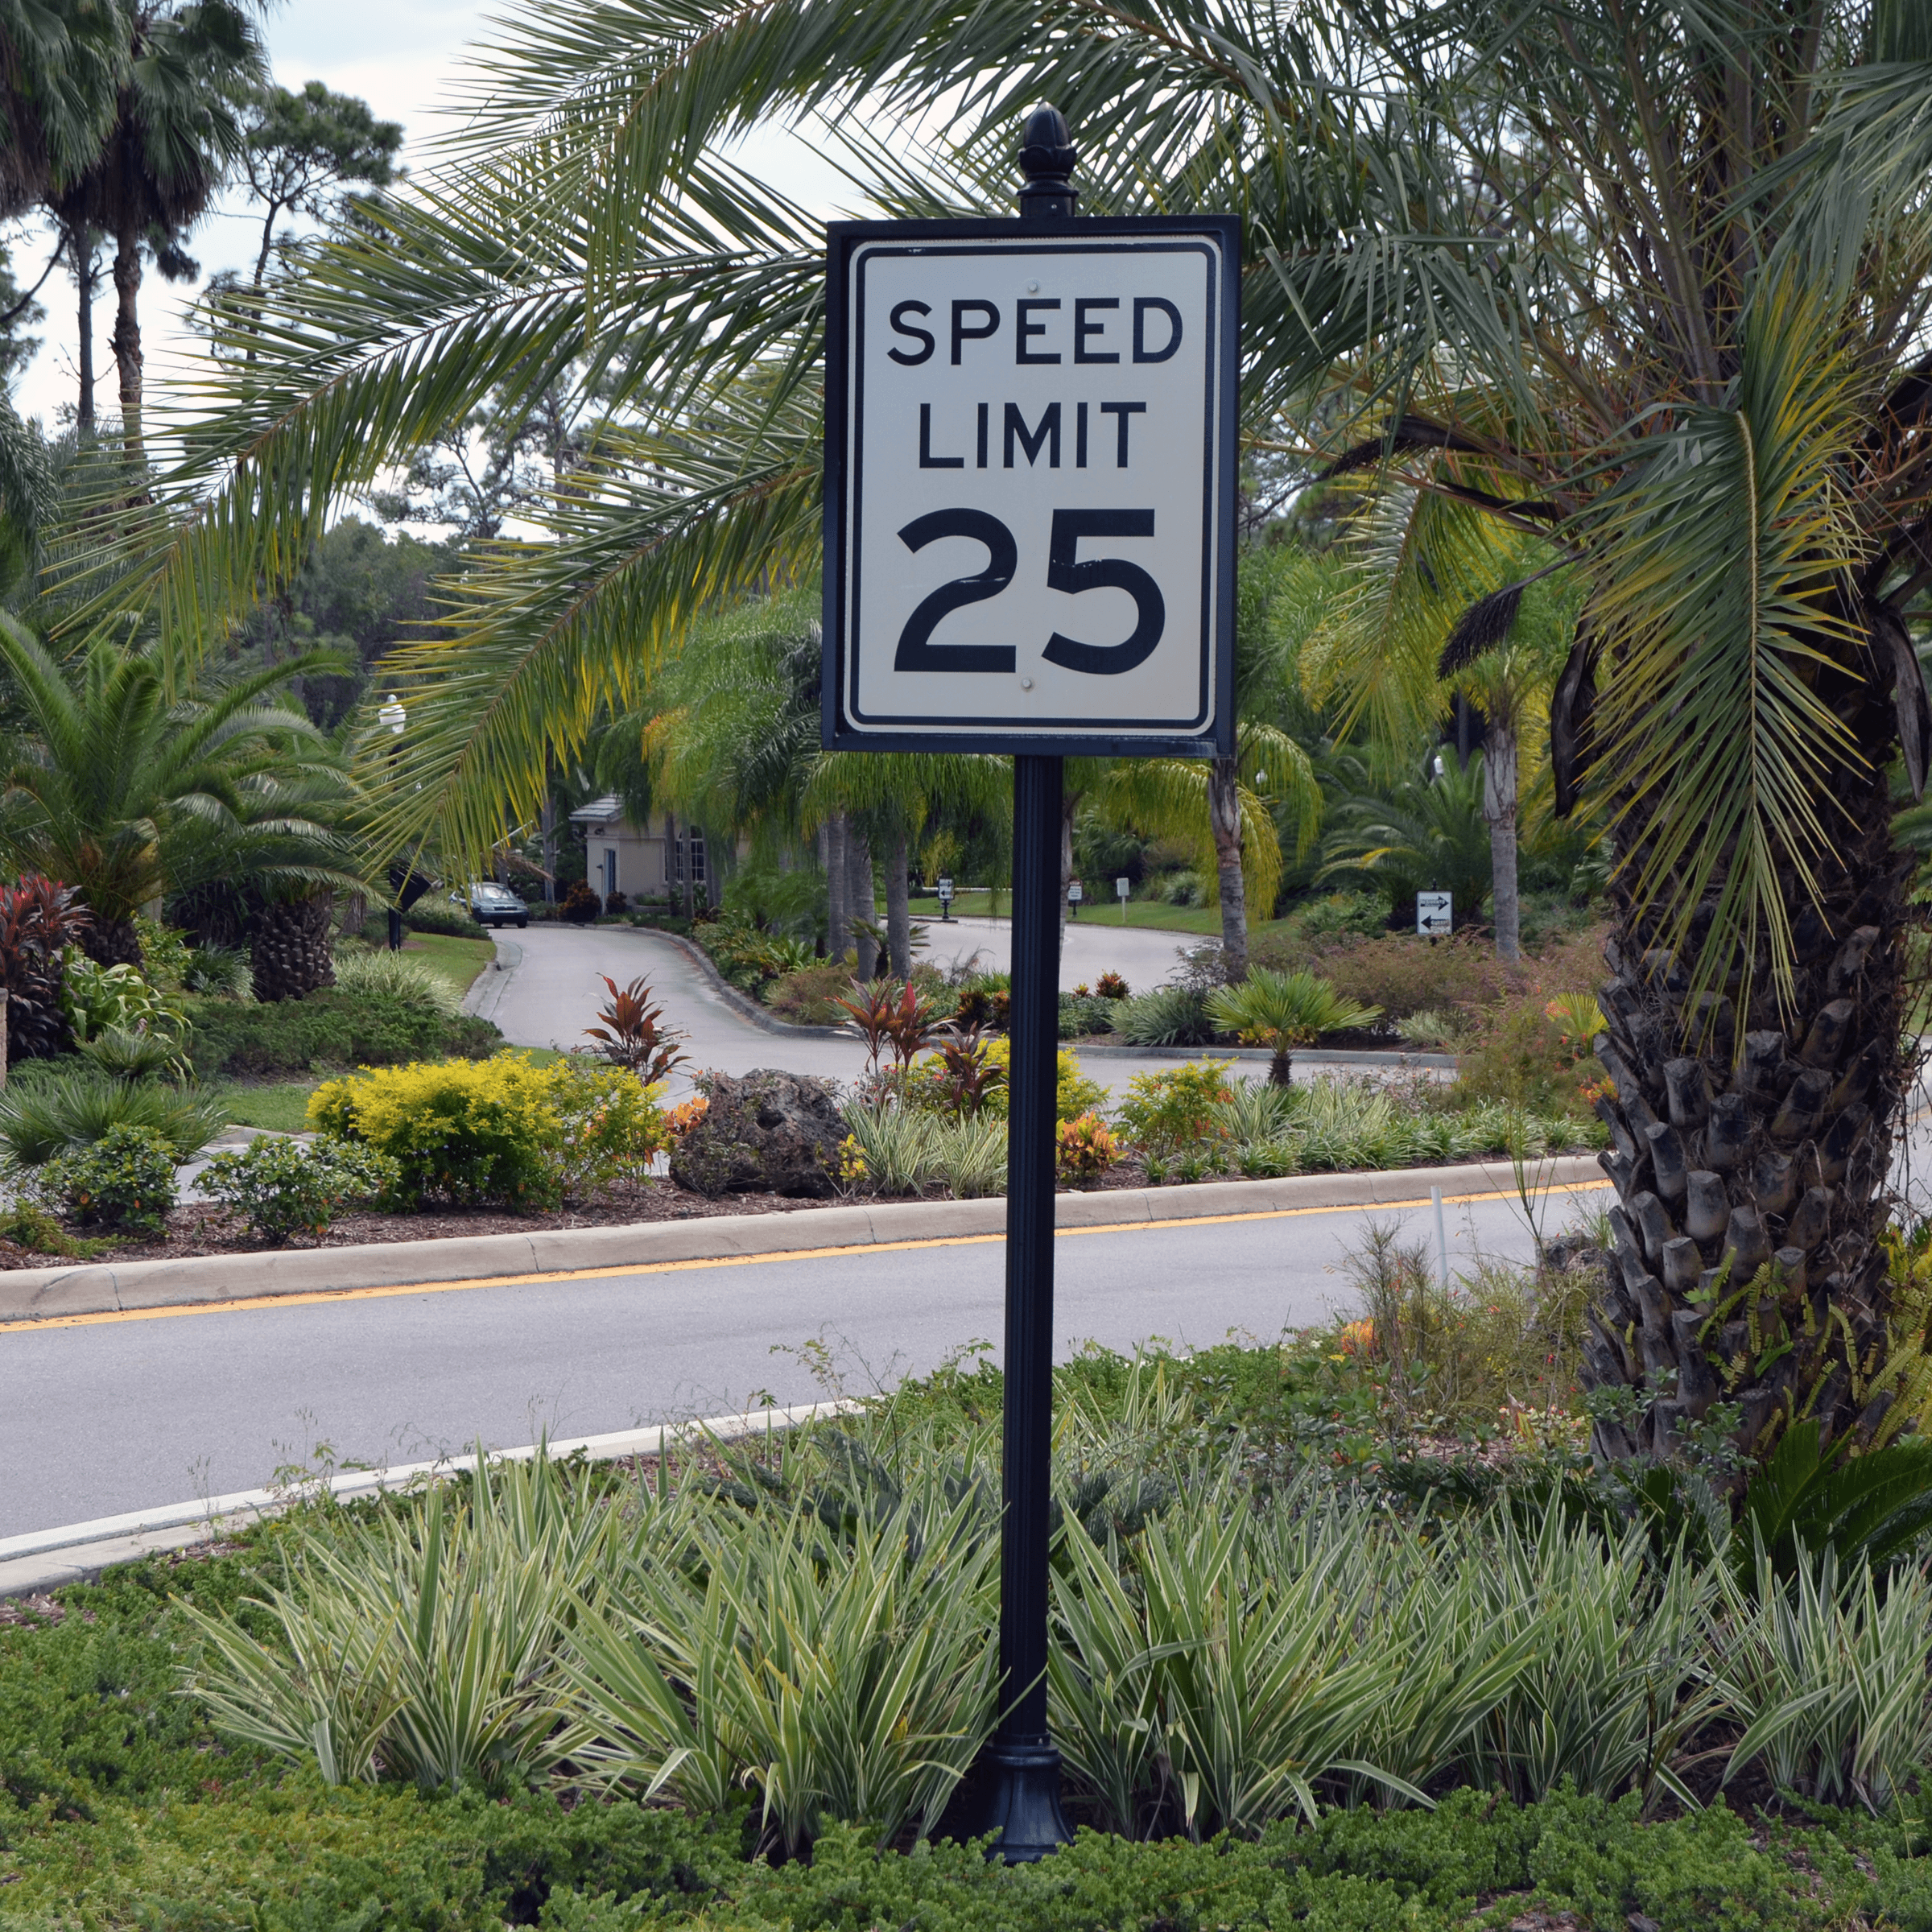 Historic Collection Speed Limit 25